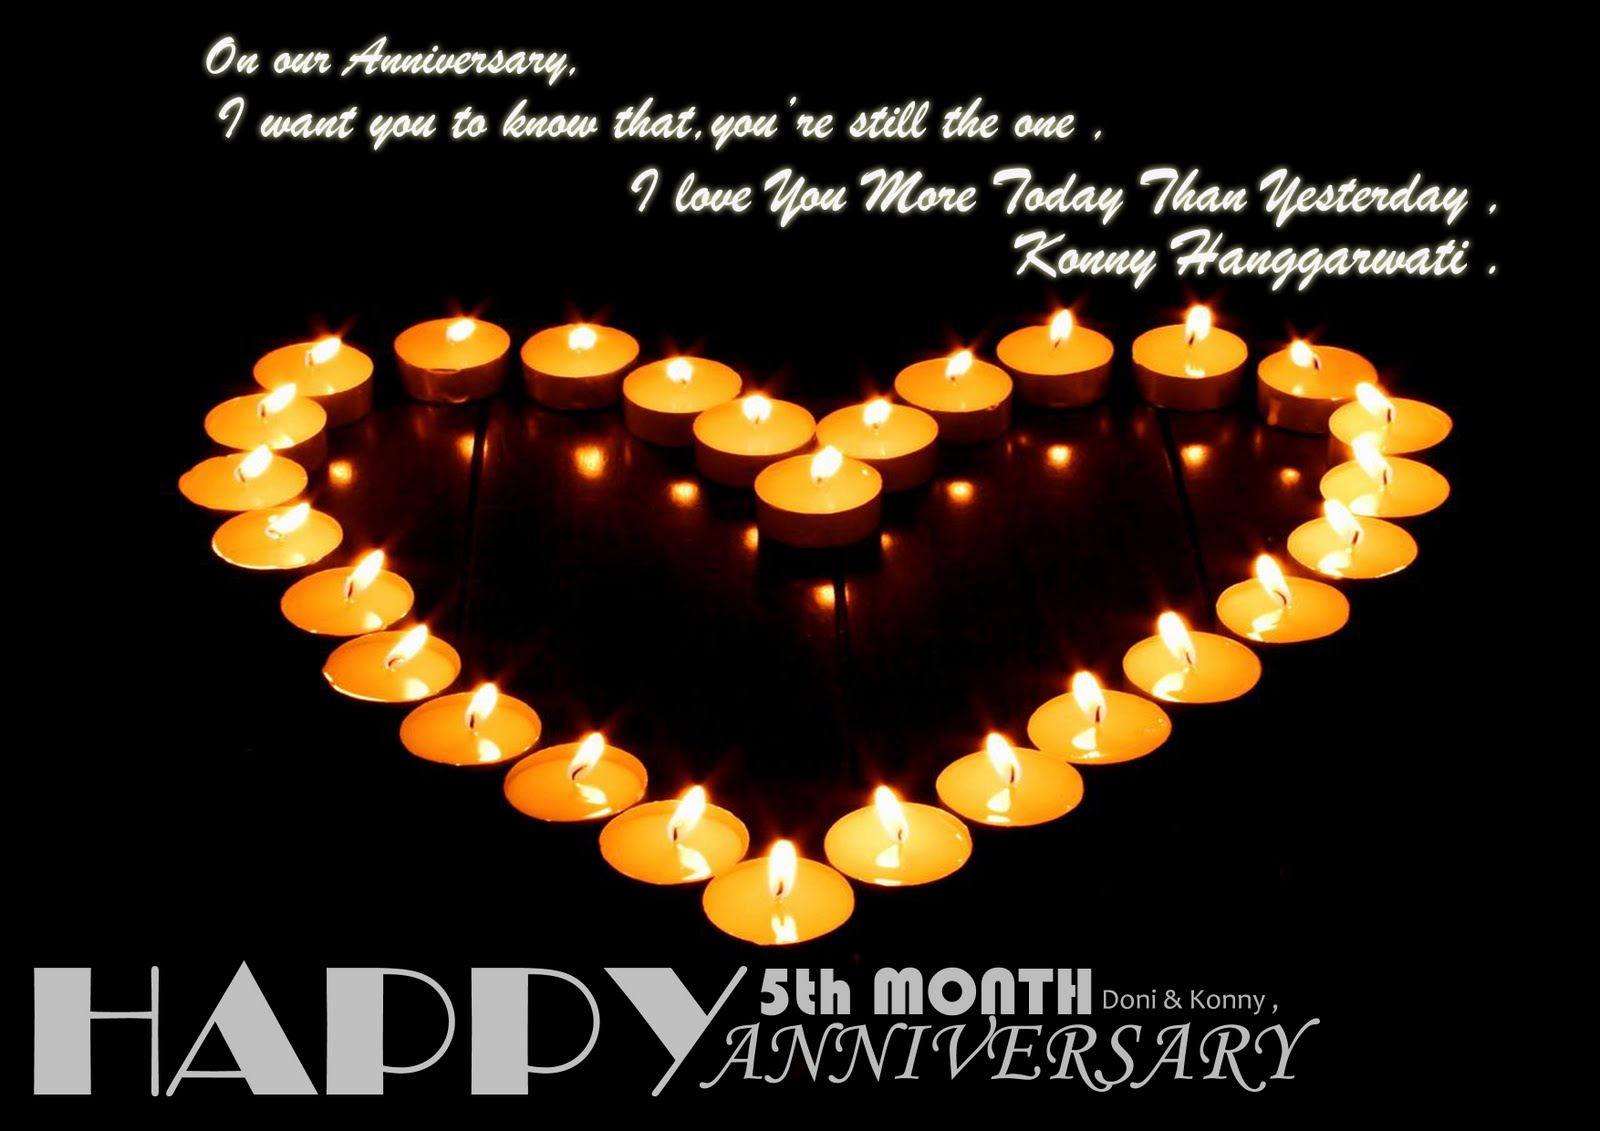 My Sweetest One: Happy 5th Month Anniversary